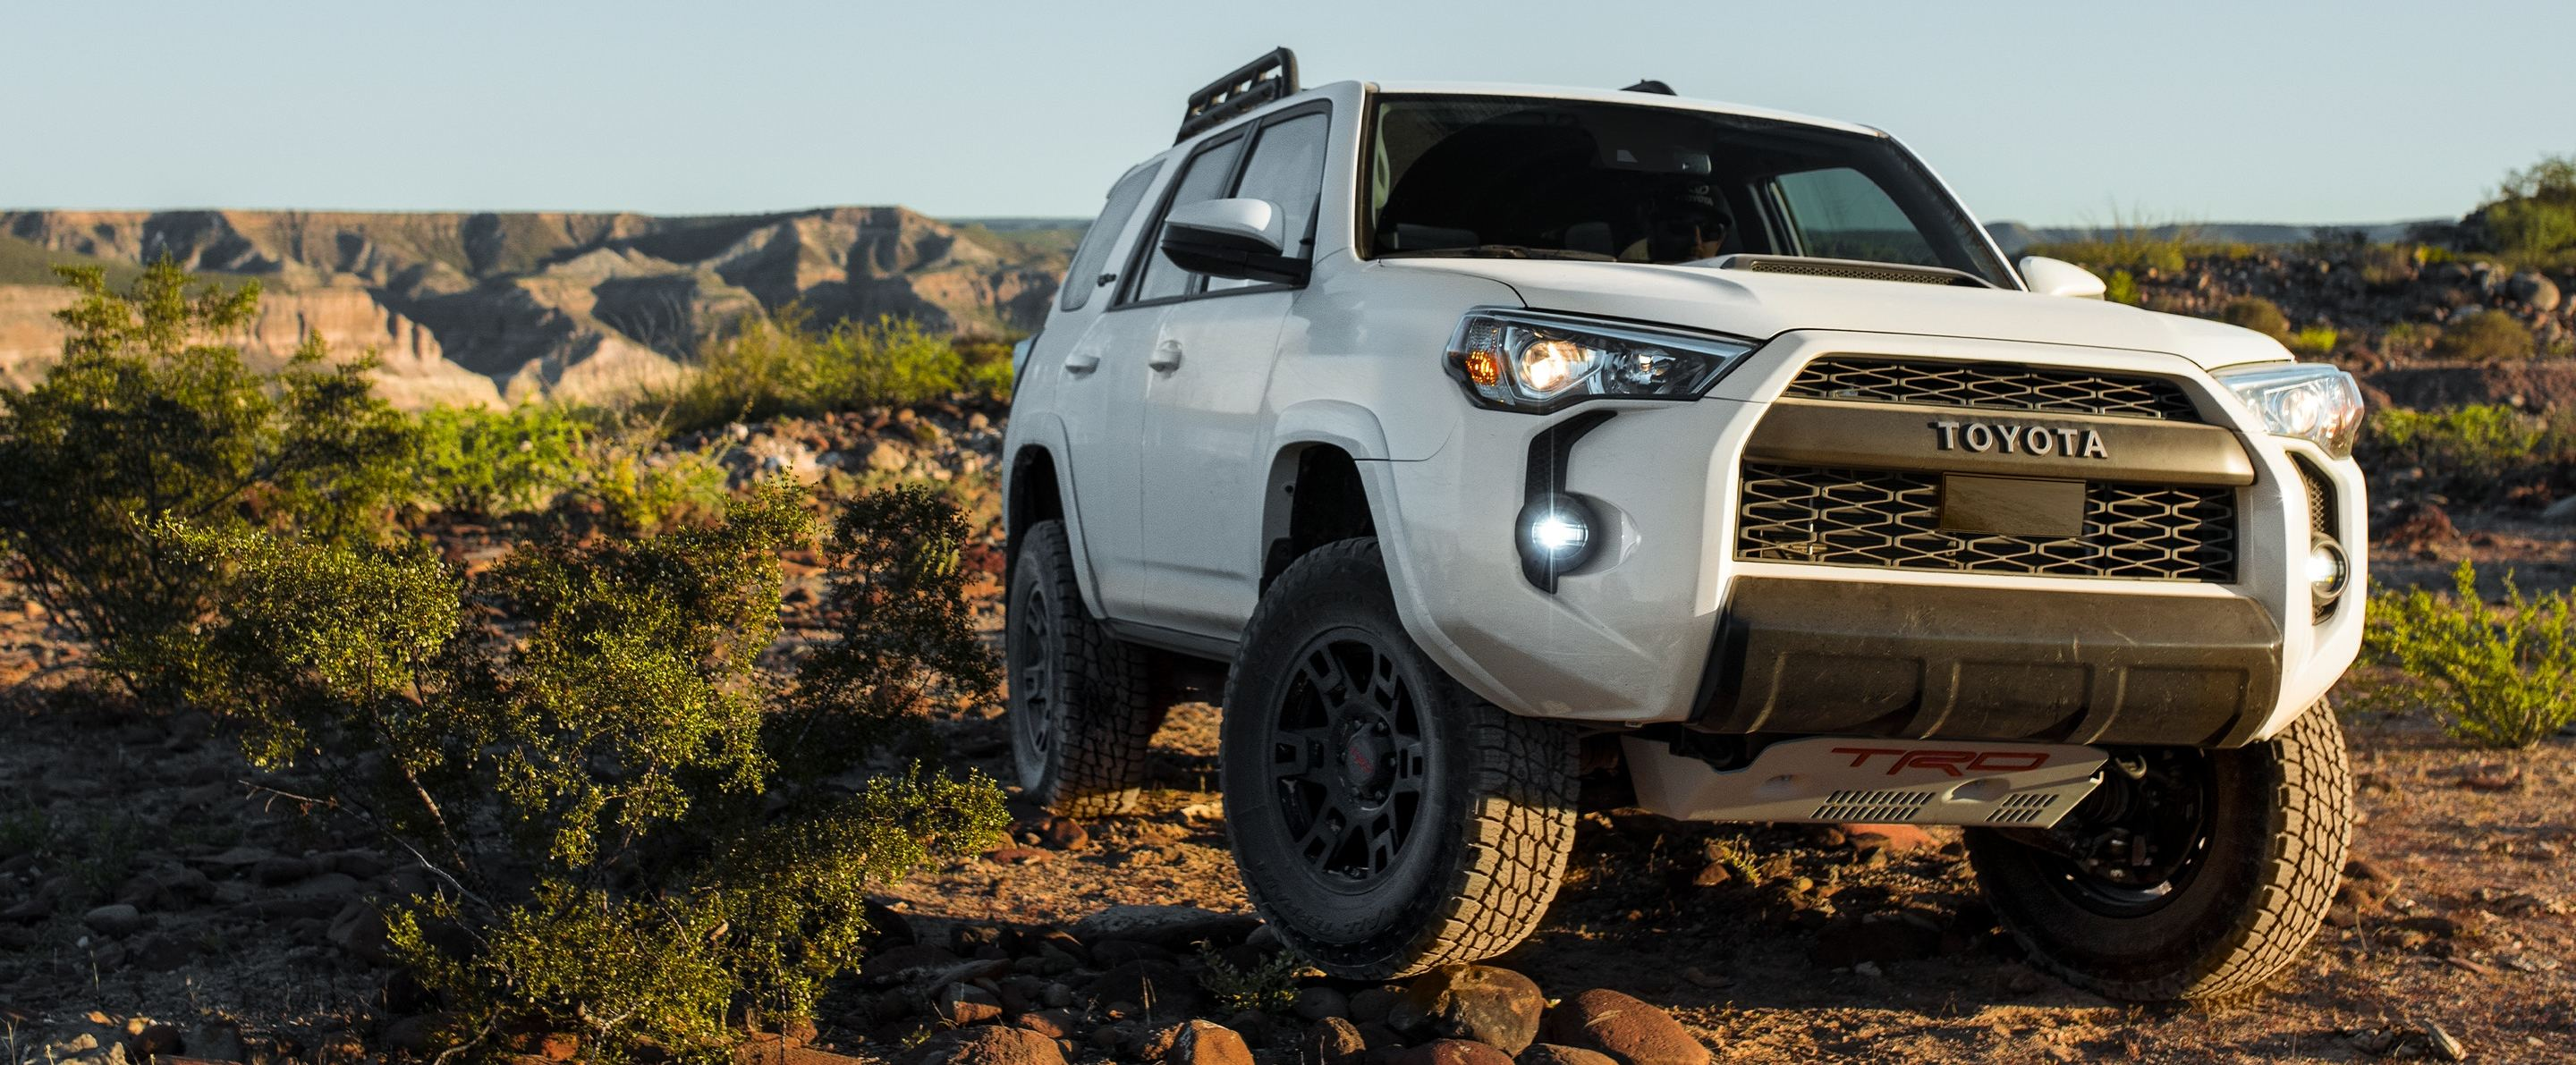 2020 Toyota 4Runner for Sale in Jamaica, NY